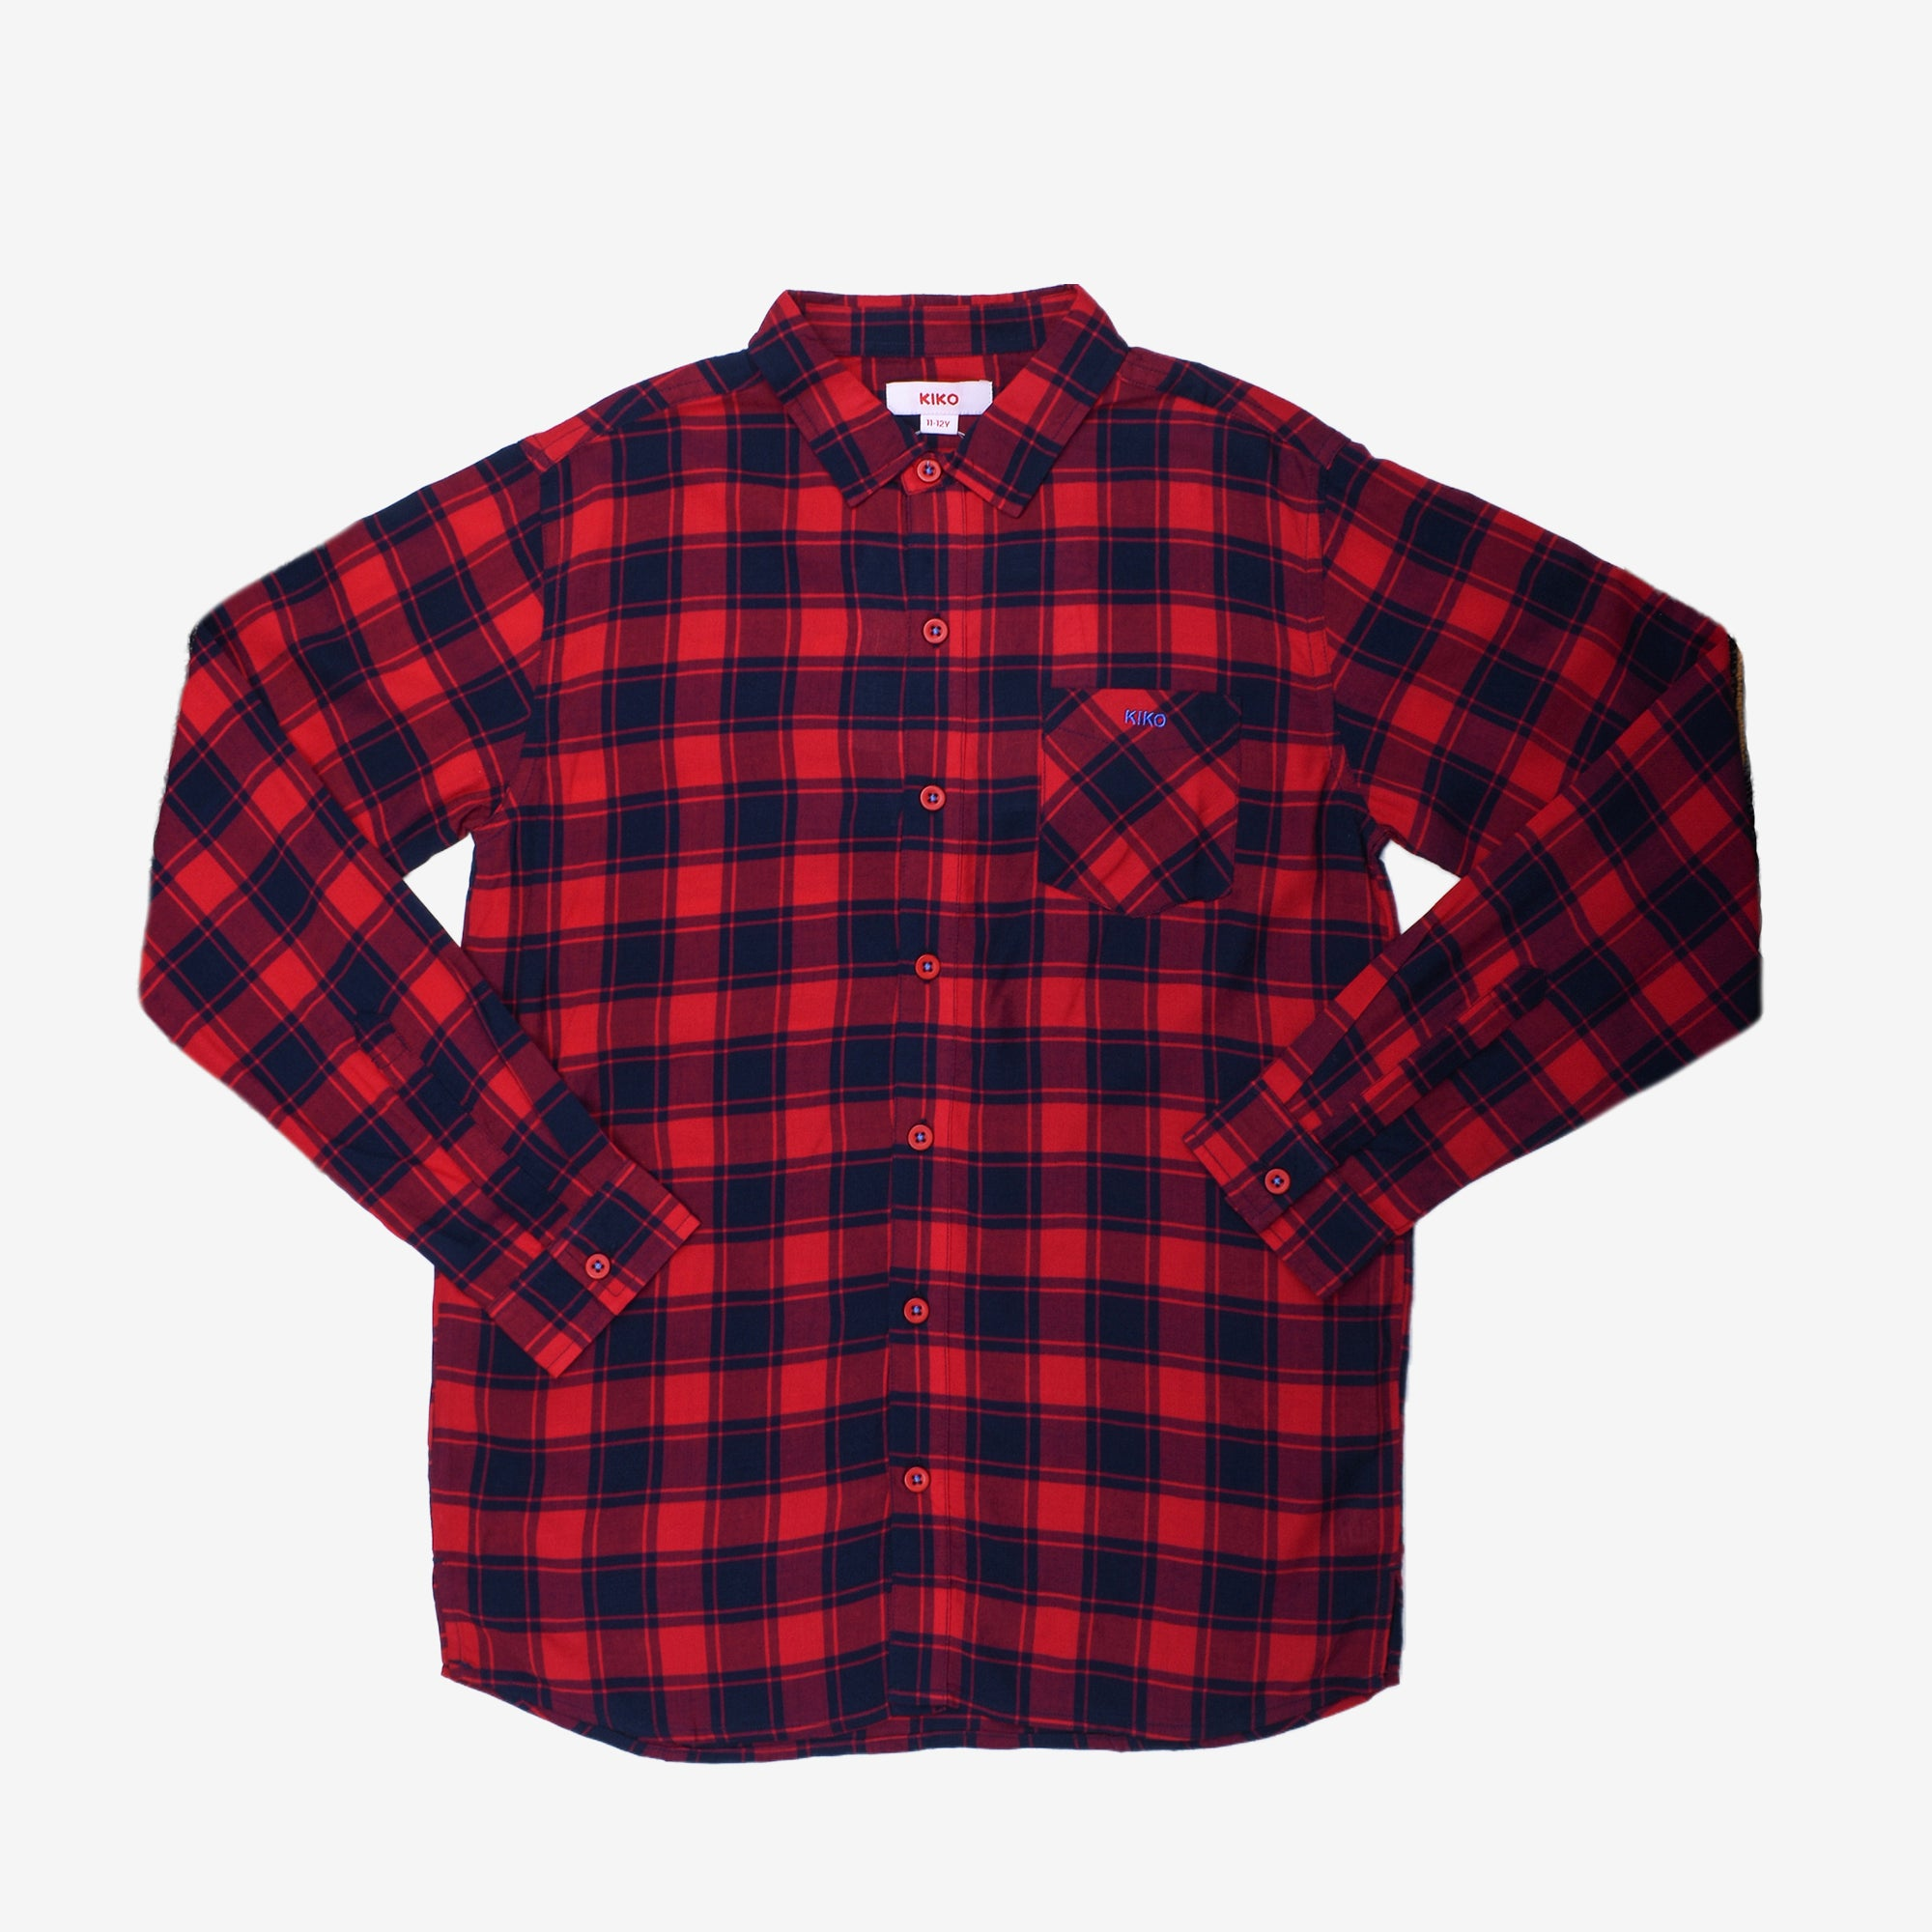 Vintage Checked Long Sleeve Shirt